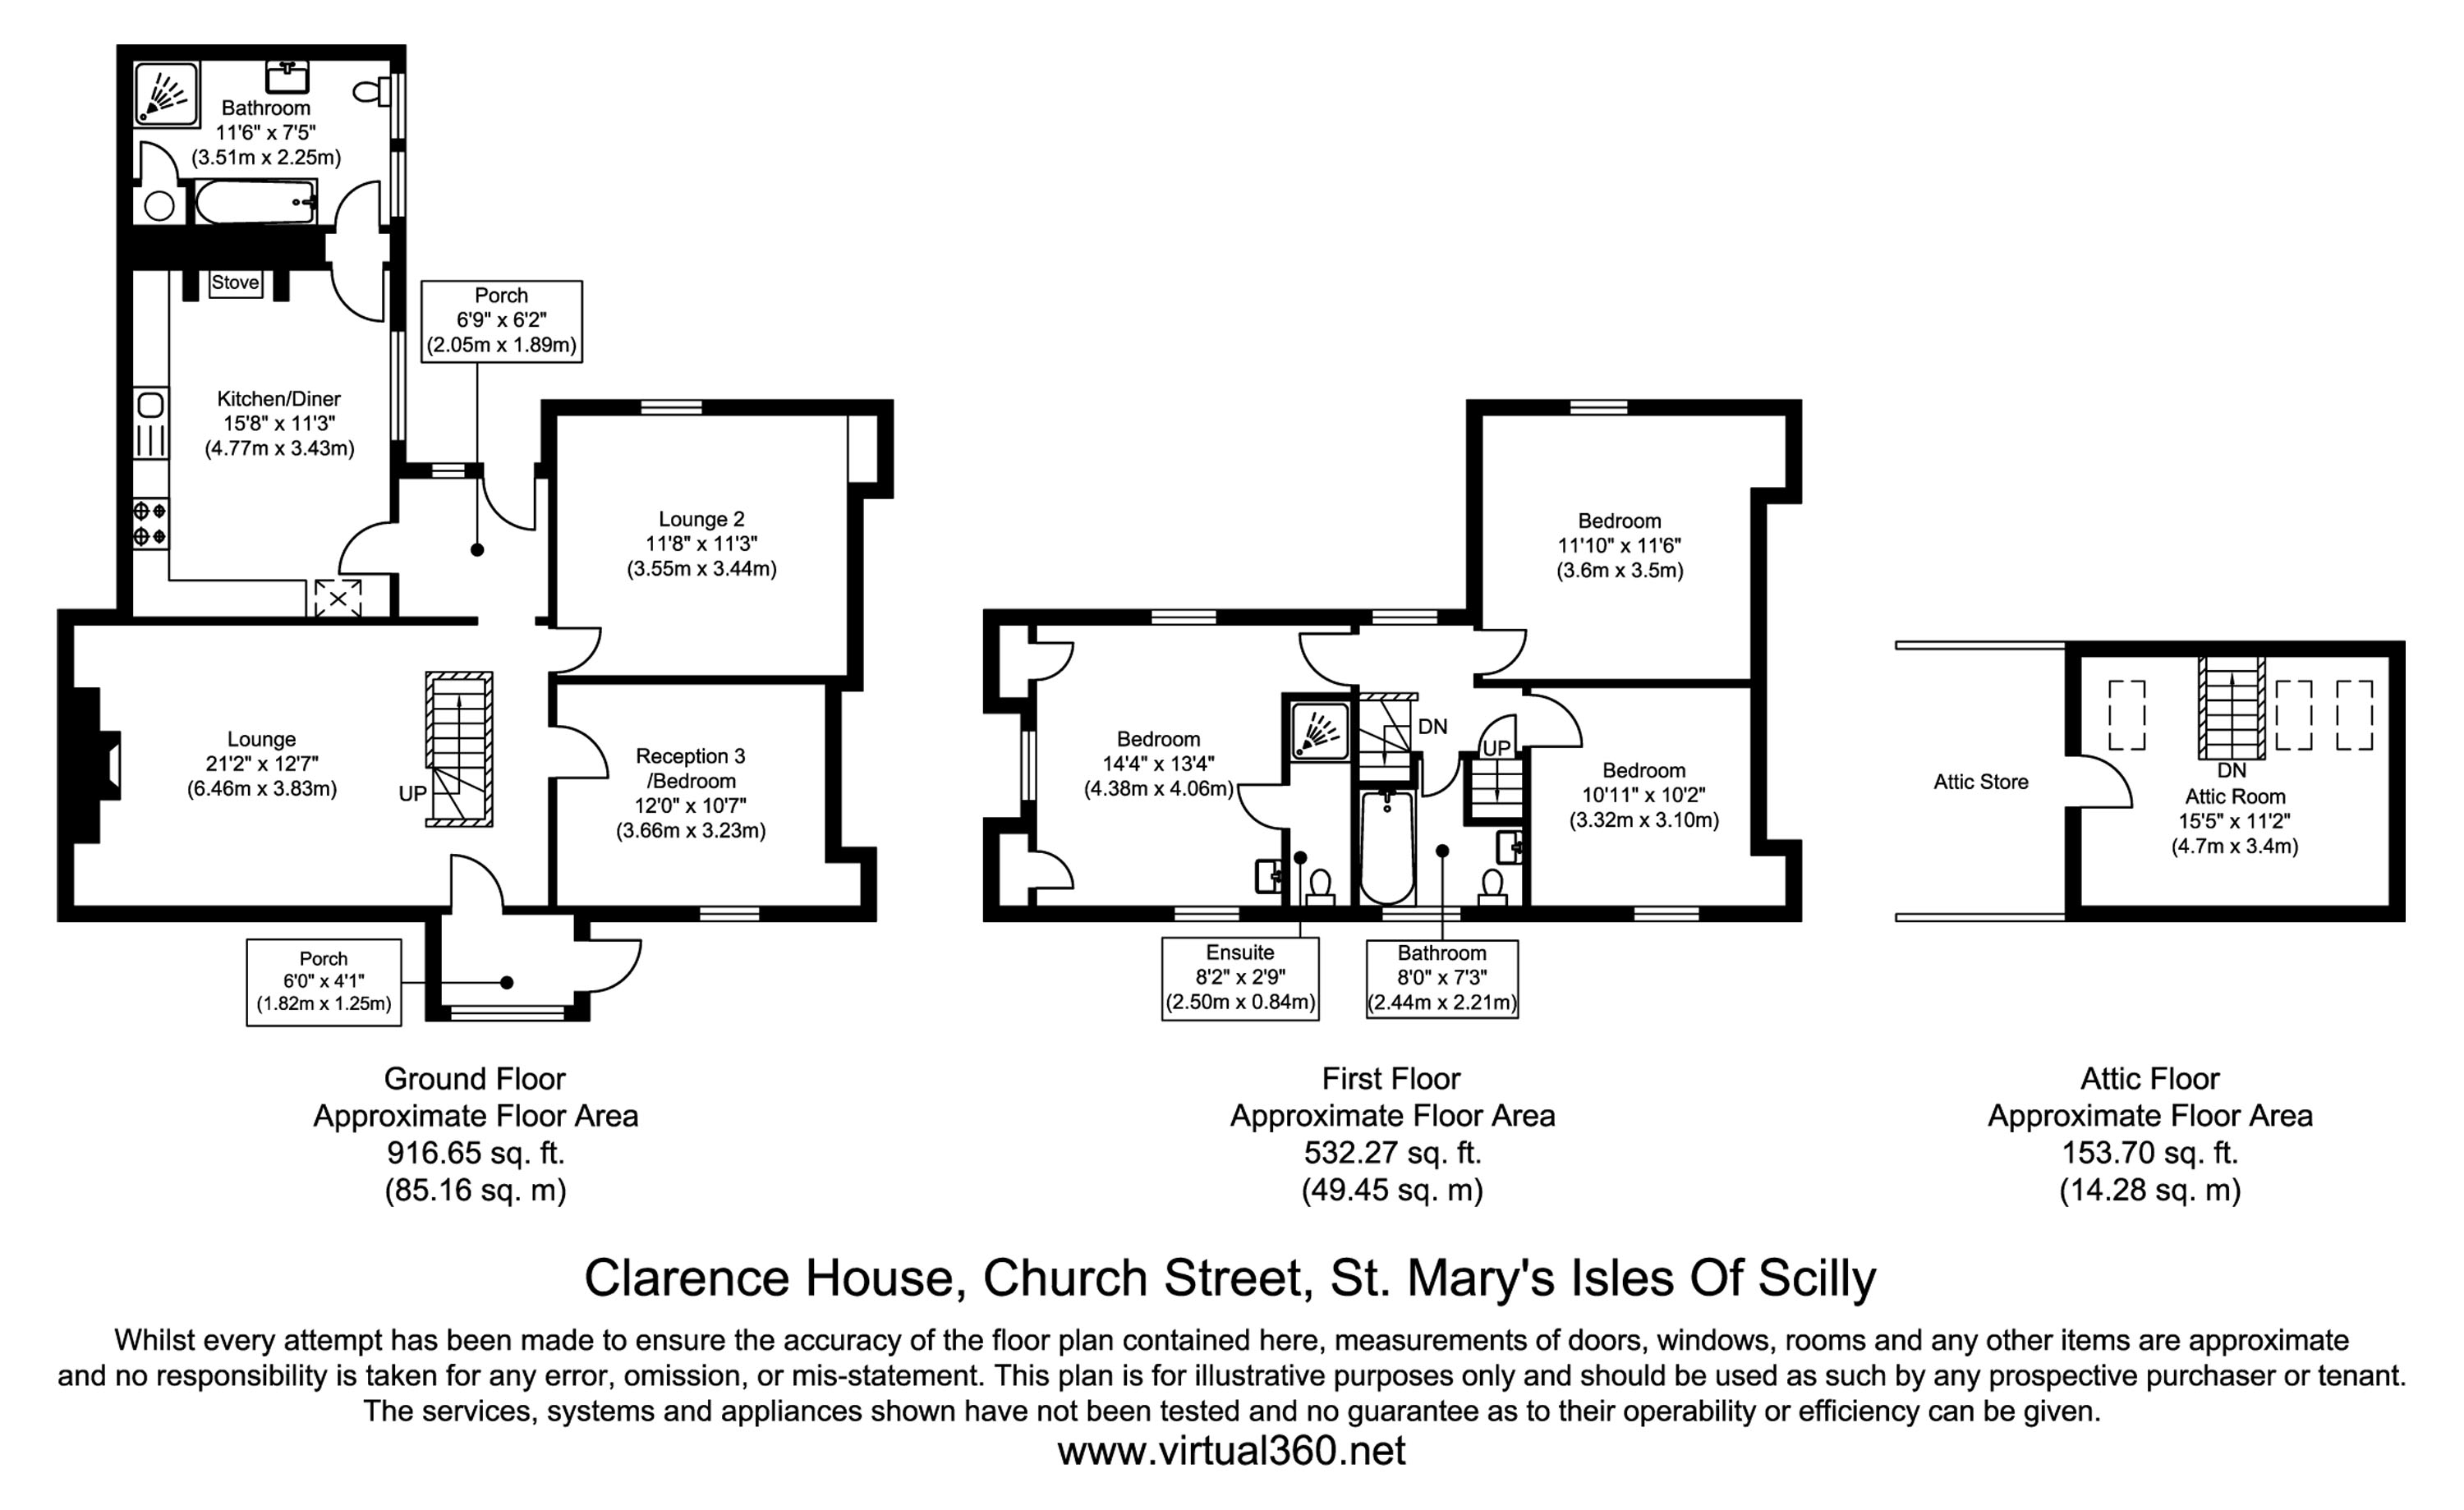 Outstanding Clarence House Floor Plan Ideas Best Idea